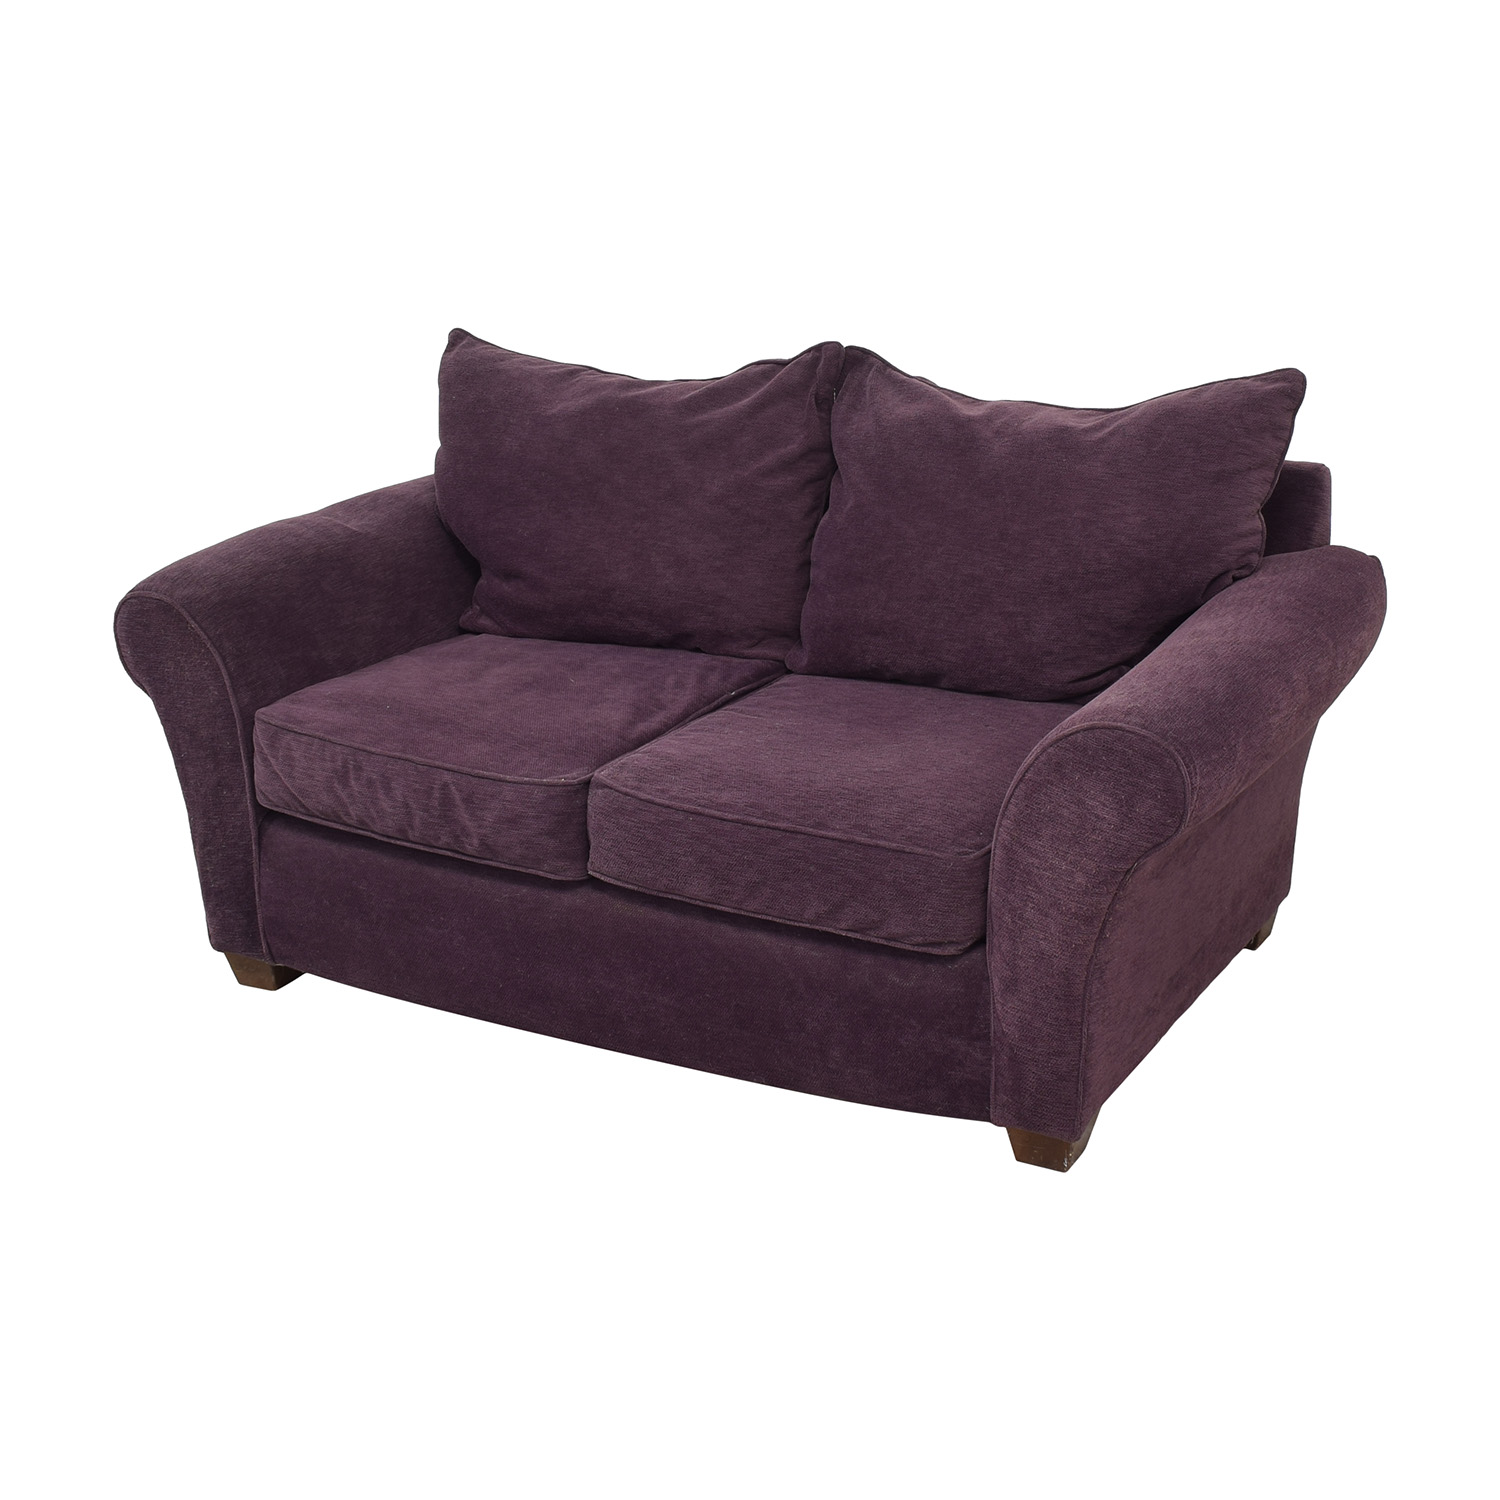 Alan White Alan White Roll Arm Loveseat Sofas